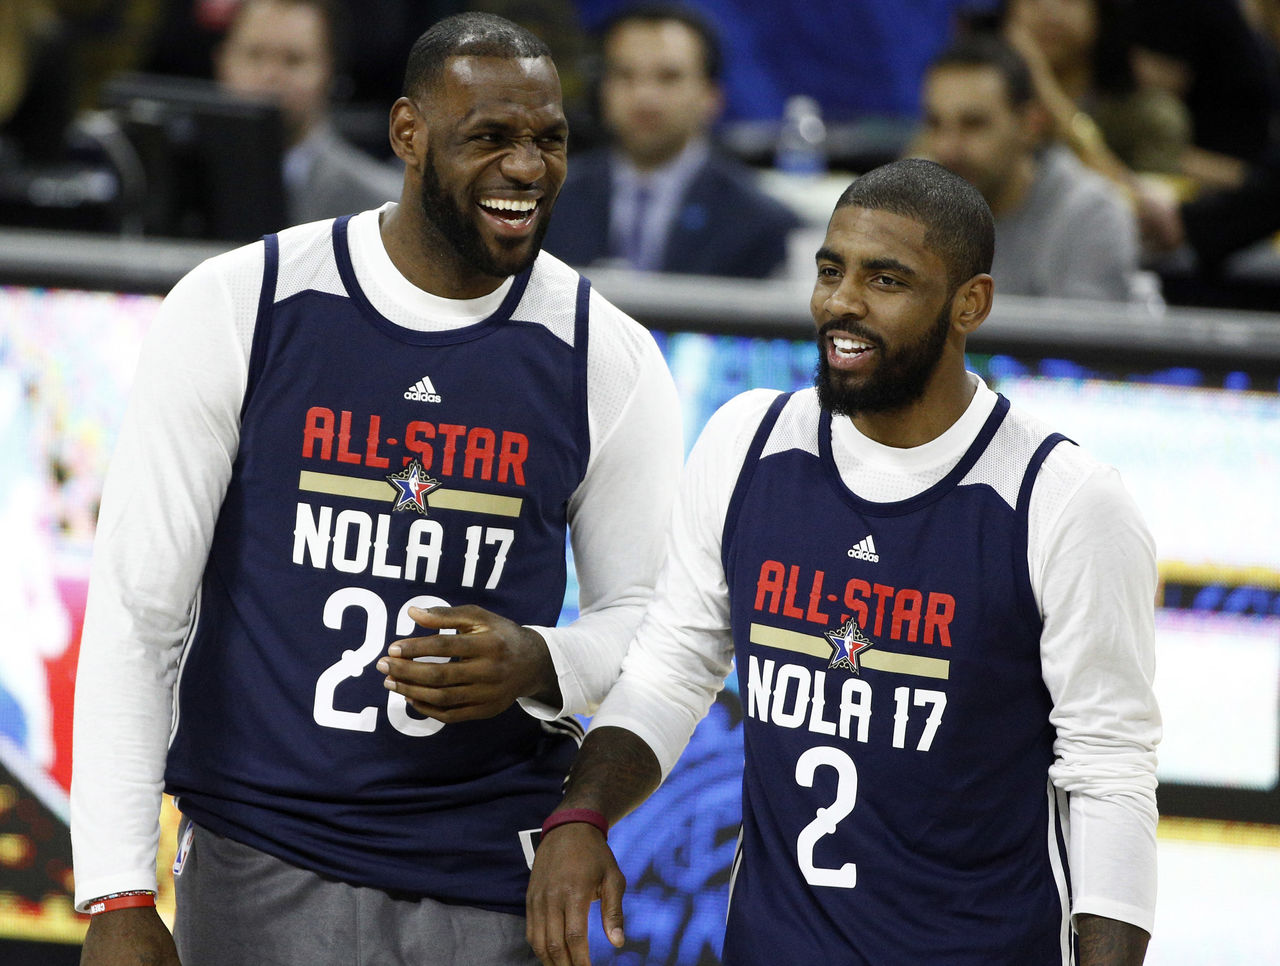 Cropped_2017-02-18t184445z_1079725926_nocid_rtrmadp_3_nba-all-star-practice